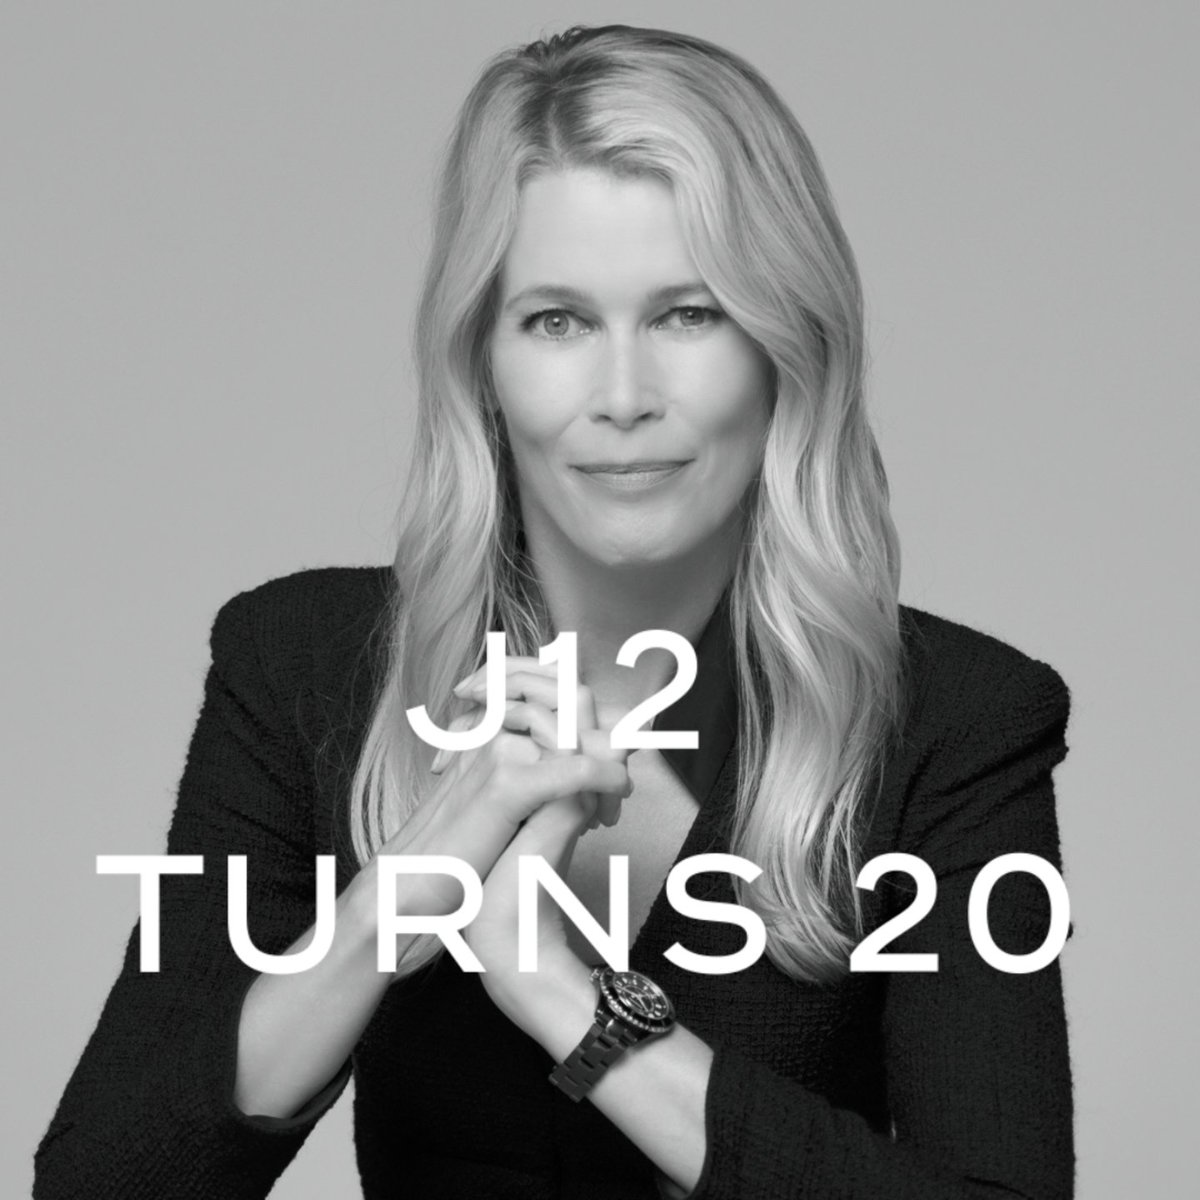 J12 TURNS 20 The J12 muses answer questions in a series of special 20th anniversary interviews. Discover more on https://t.co/l8yPFIoaUD  #J12Turns20 #CHANELWatches #ItsAllAboutSeconds https://t.co/YJV7CKSVob